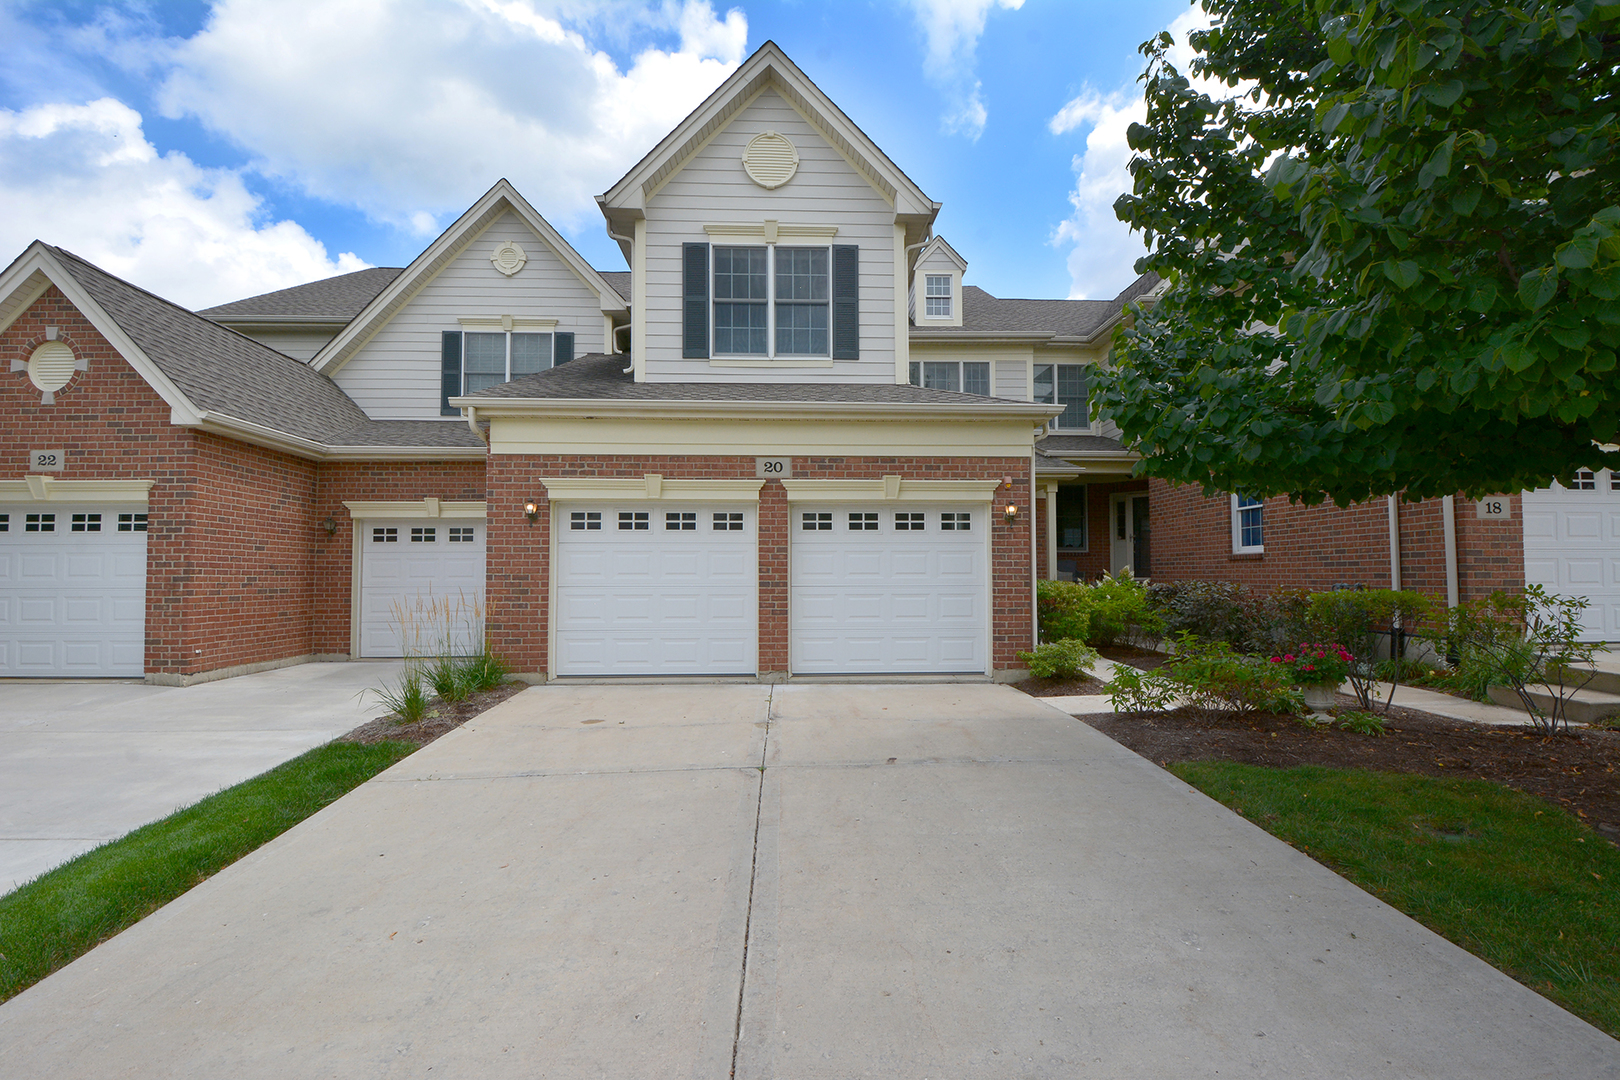 20 Red Tail Drive, Hawthorn Woods, Illinois 60047